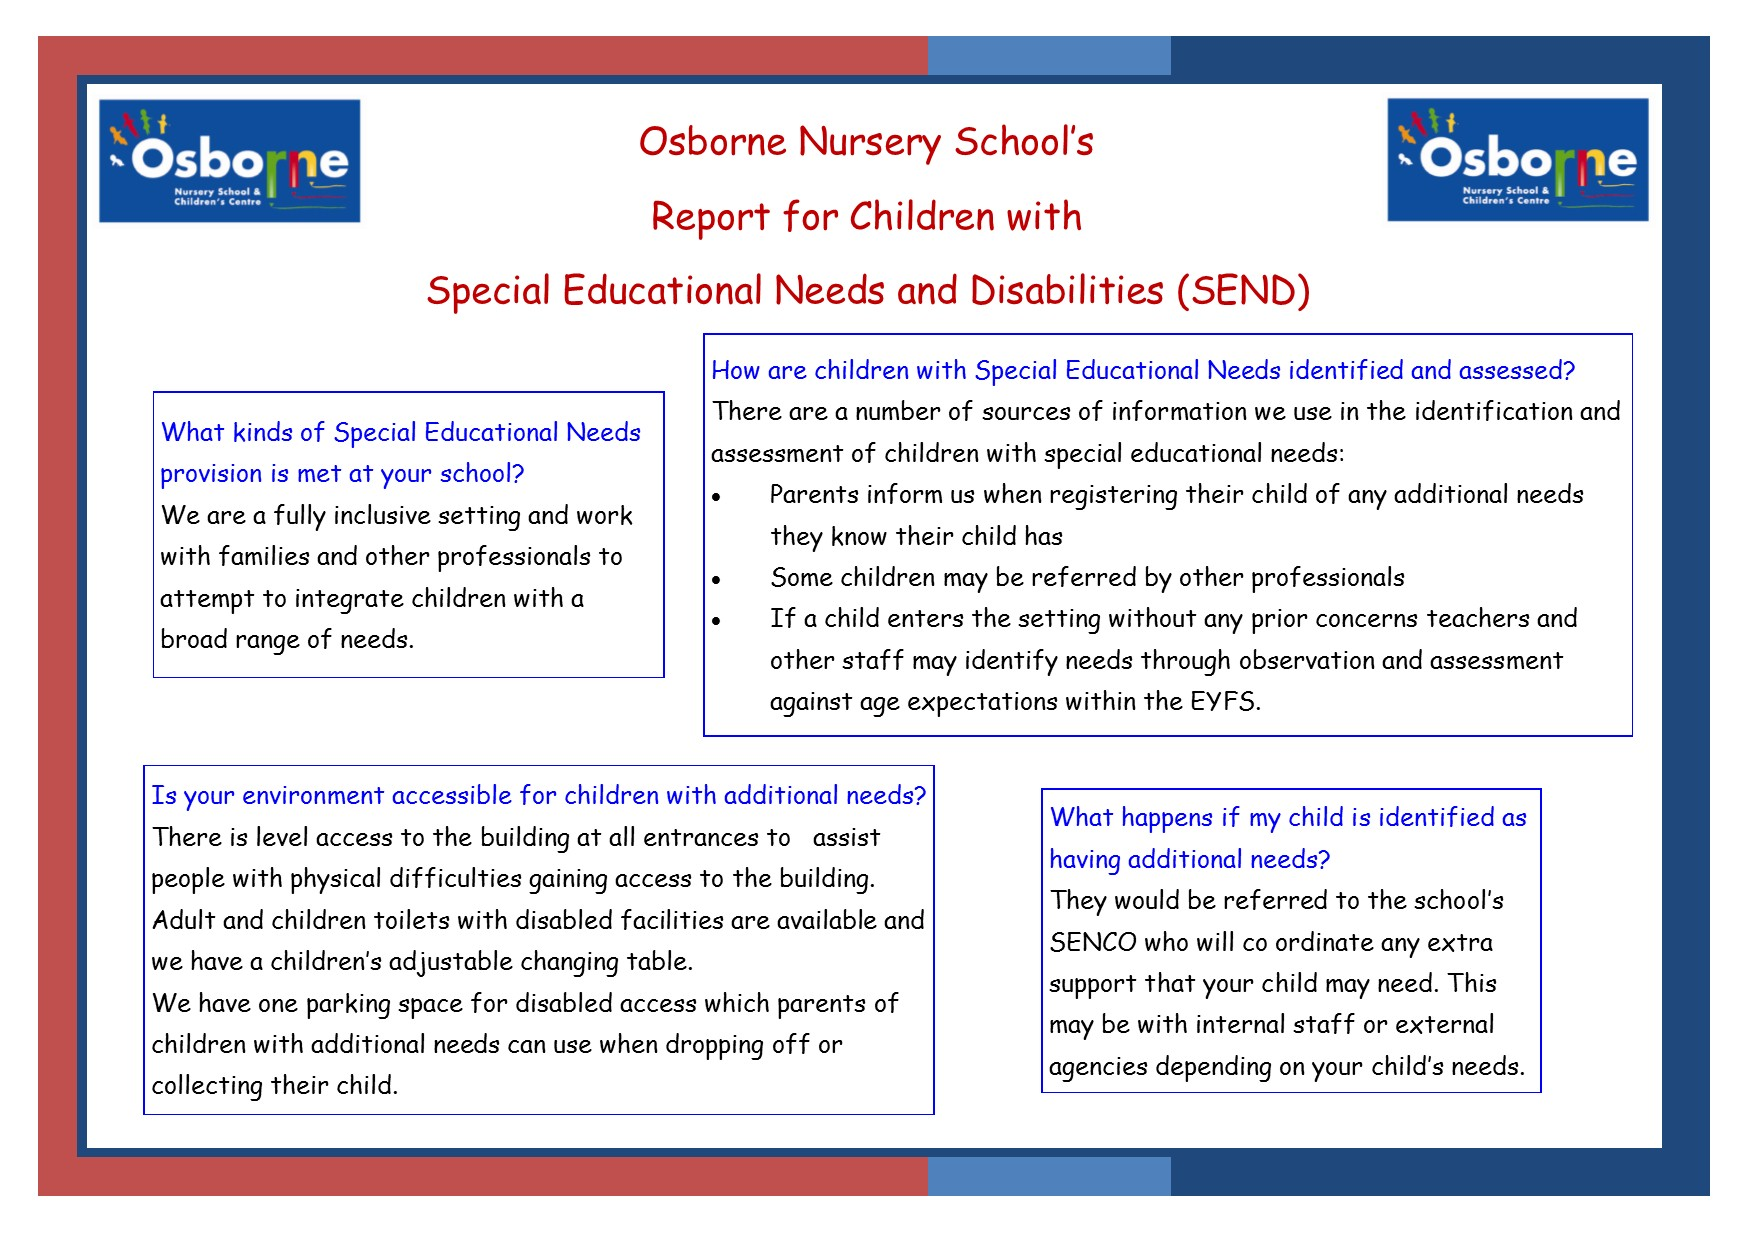 special education needs The site lists special education workshops and other events focusing on the special needs of students you can also join the community to meet other teachers in your area or across the nation to learn what's worked for them in their classrooms.